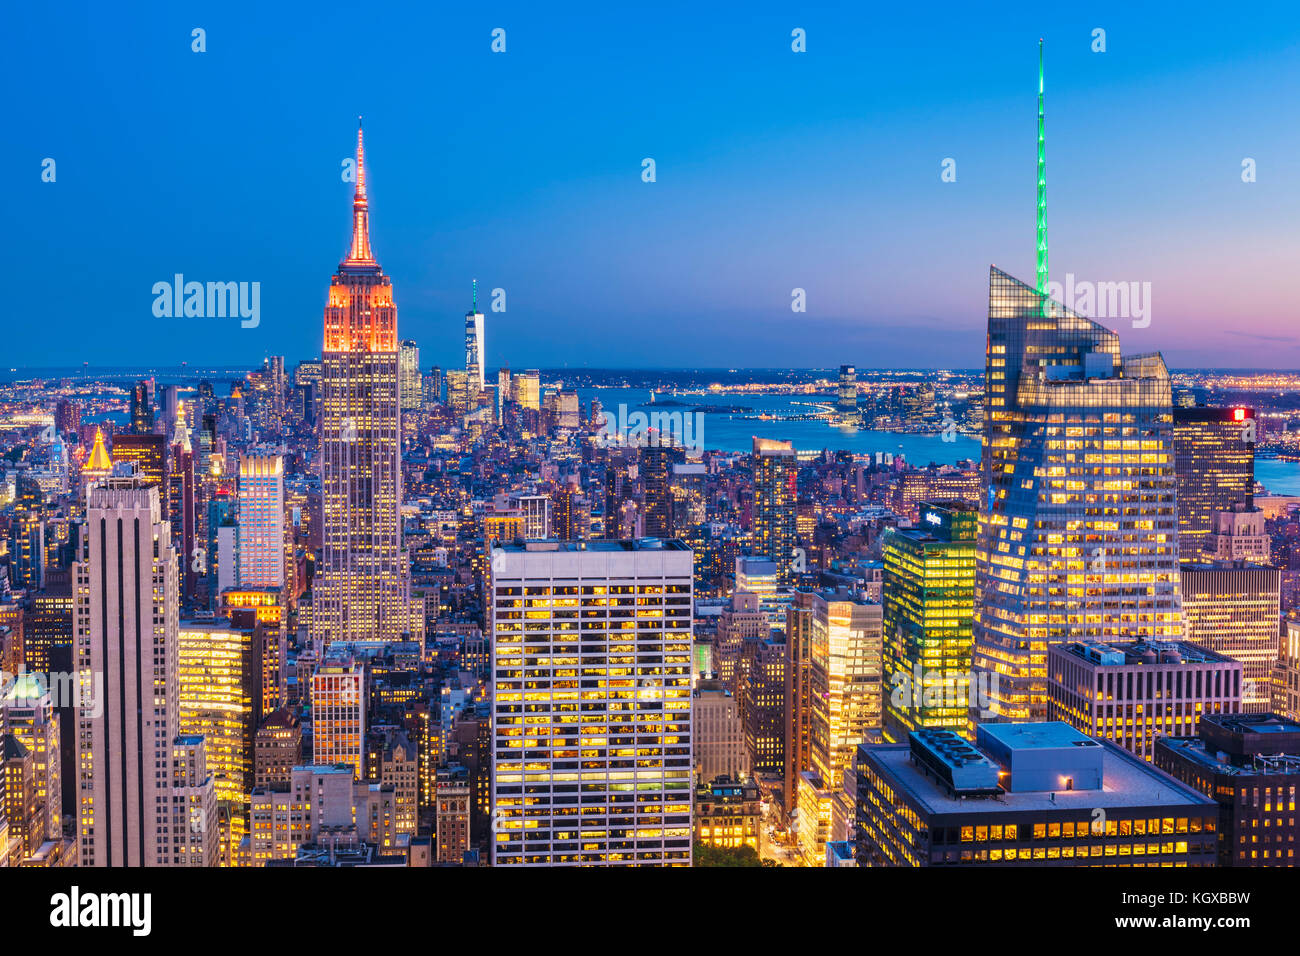 Toits de New York, manhattan, Empire State Building, de nuit, New York City, États-Unis d'Amérique, Amérique du Banque D'Images